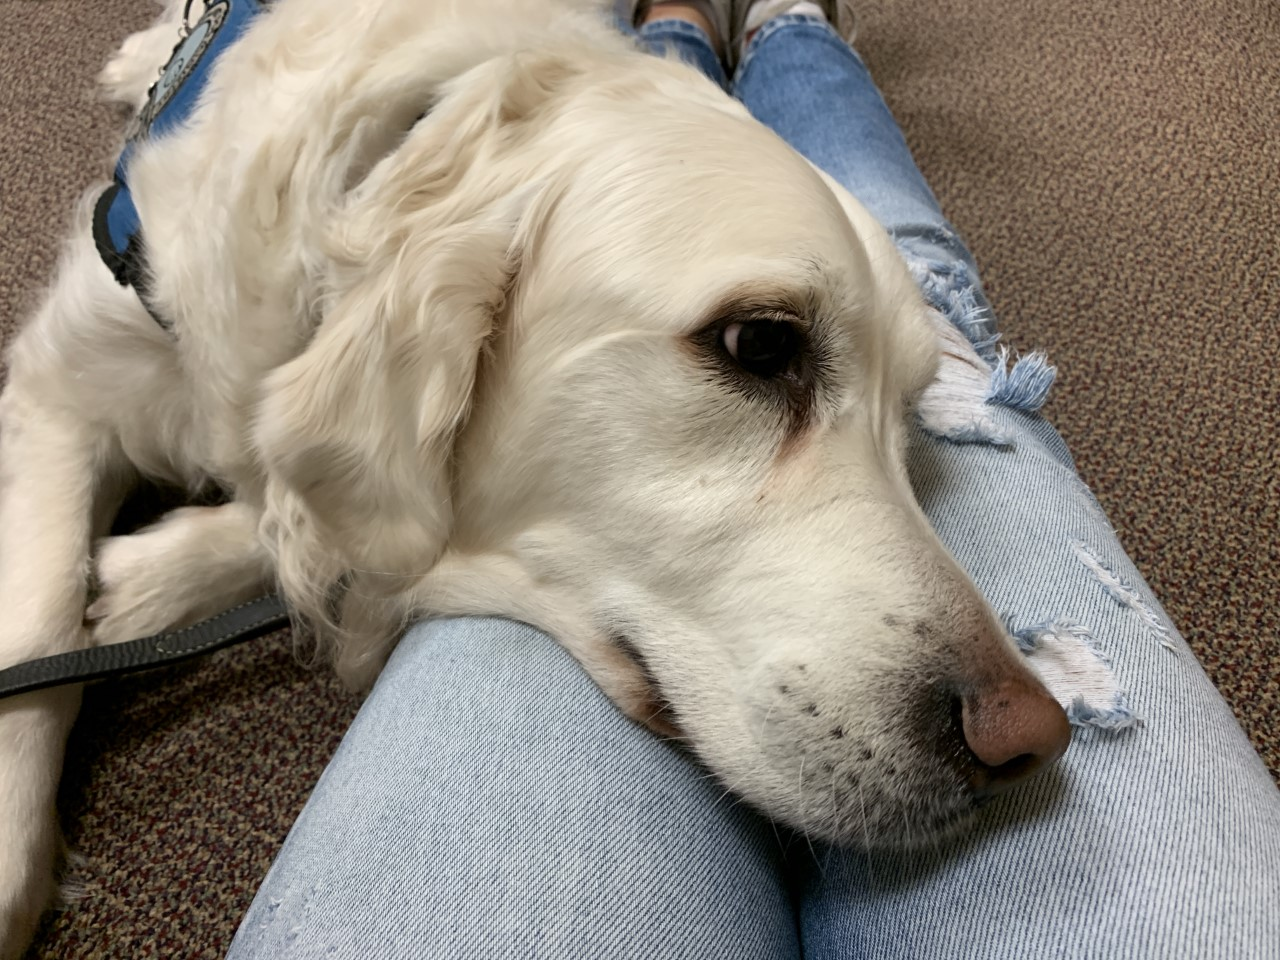 Angel, service dog, will be at the school in room 114 every Friday afternoon to give comfort to students and faculty.